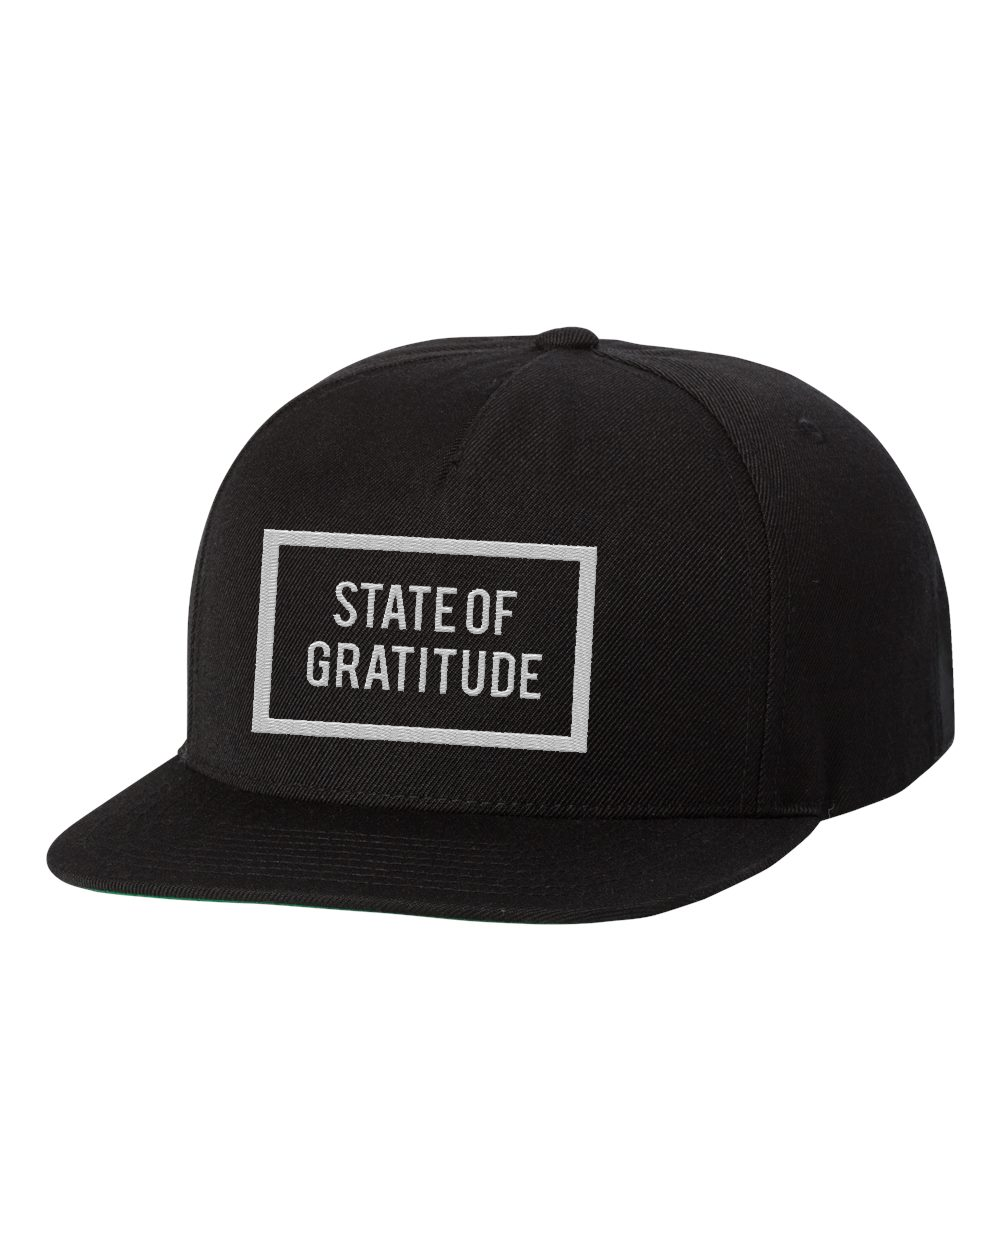 State of Gratitude x Yupoong Classic Fit Unisex Hat. One size fits all Snapback. Streetwear. Athletic Wear. Everyday Gratitude Apparel.